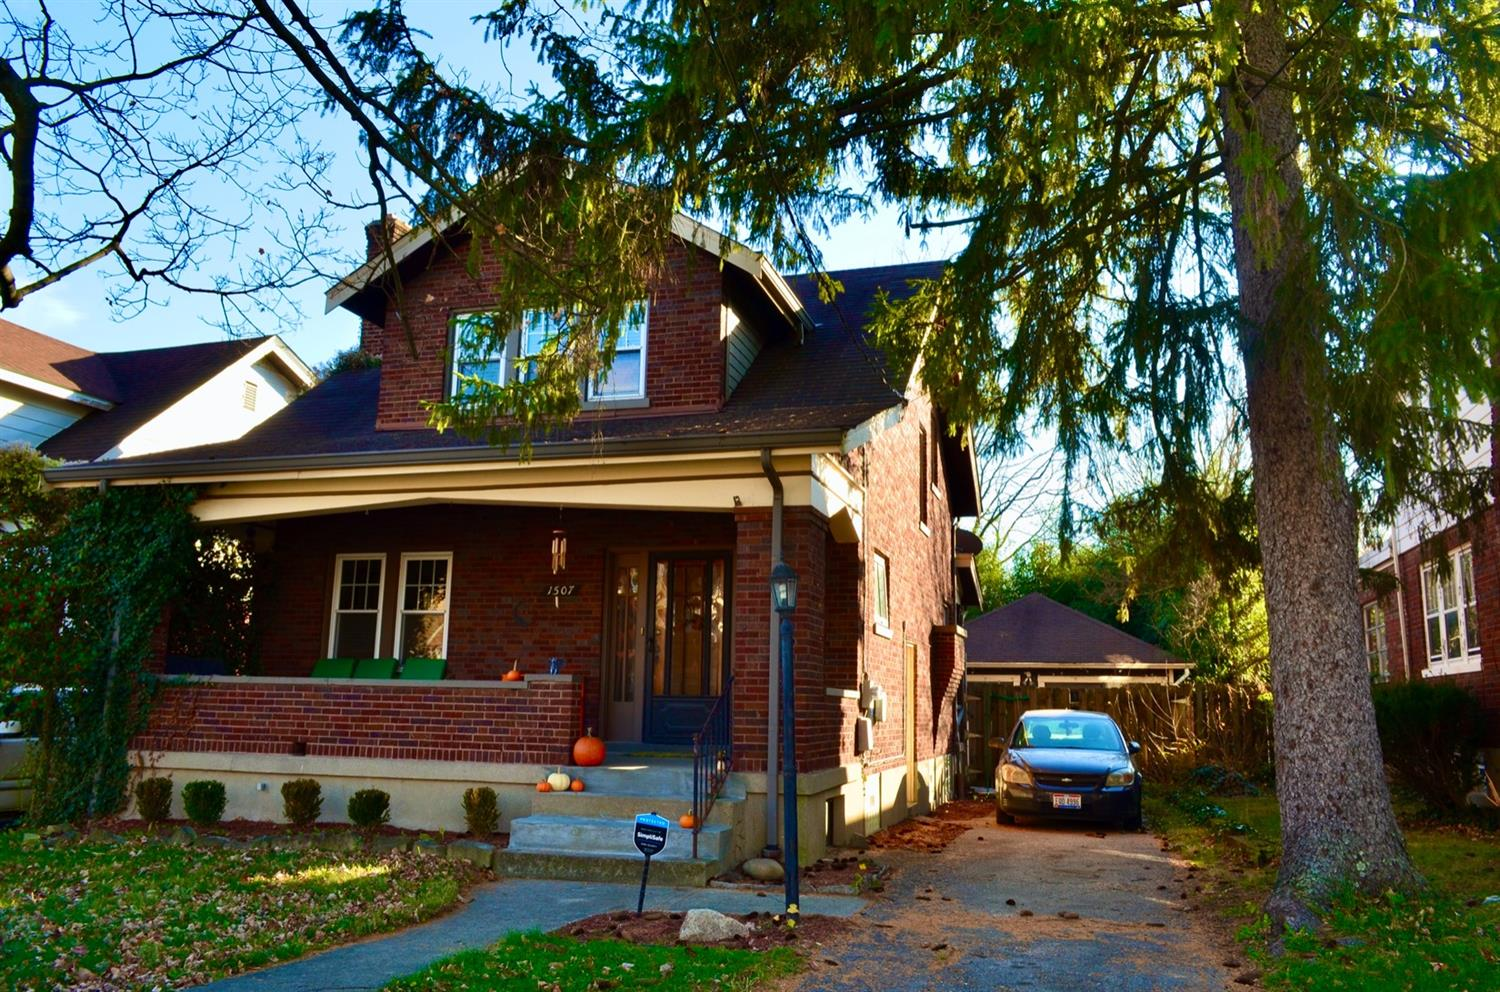 Cincinnati is rich with Craftsman Bungalow homes and this one is not only loaded with detail, but is full brick construction with cool little details - like the band board above the front porch.